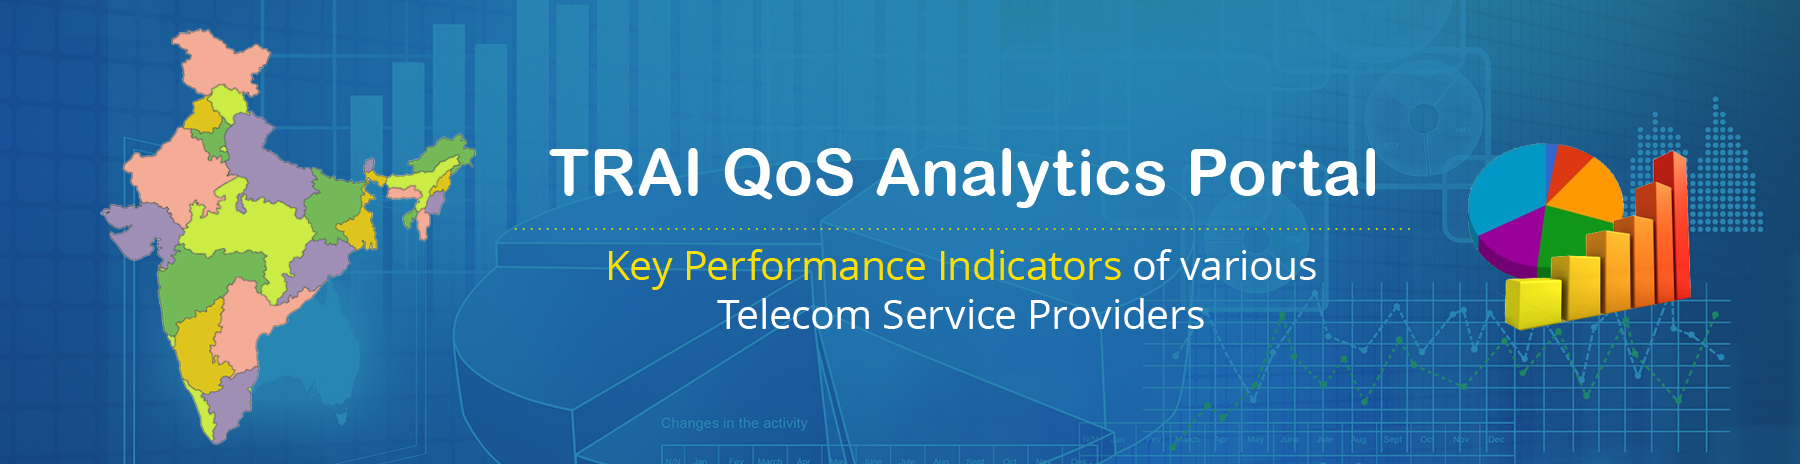 TRAI QoS Analytics Portal